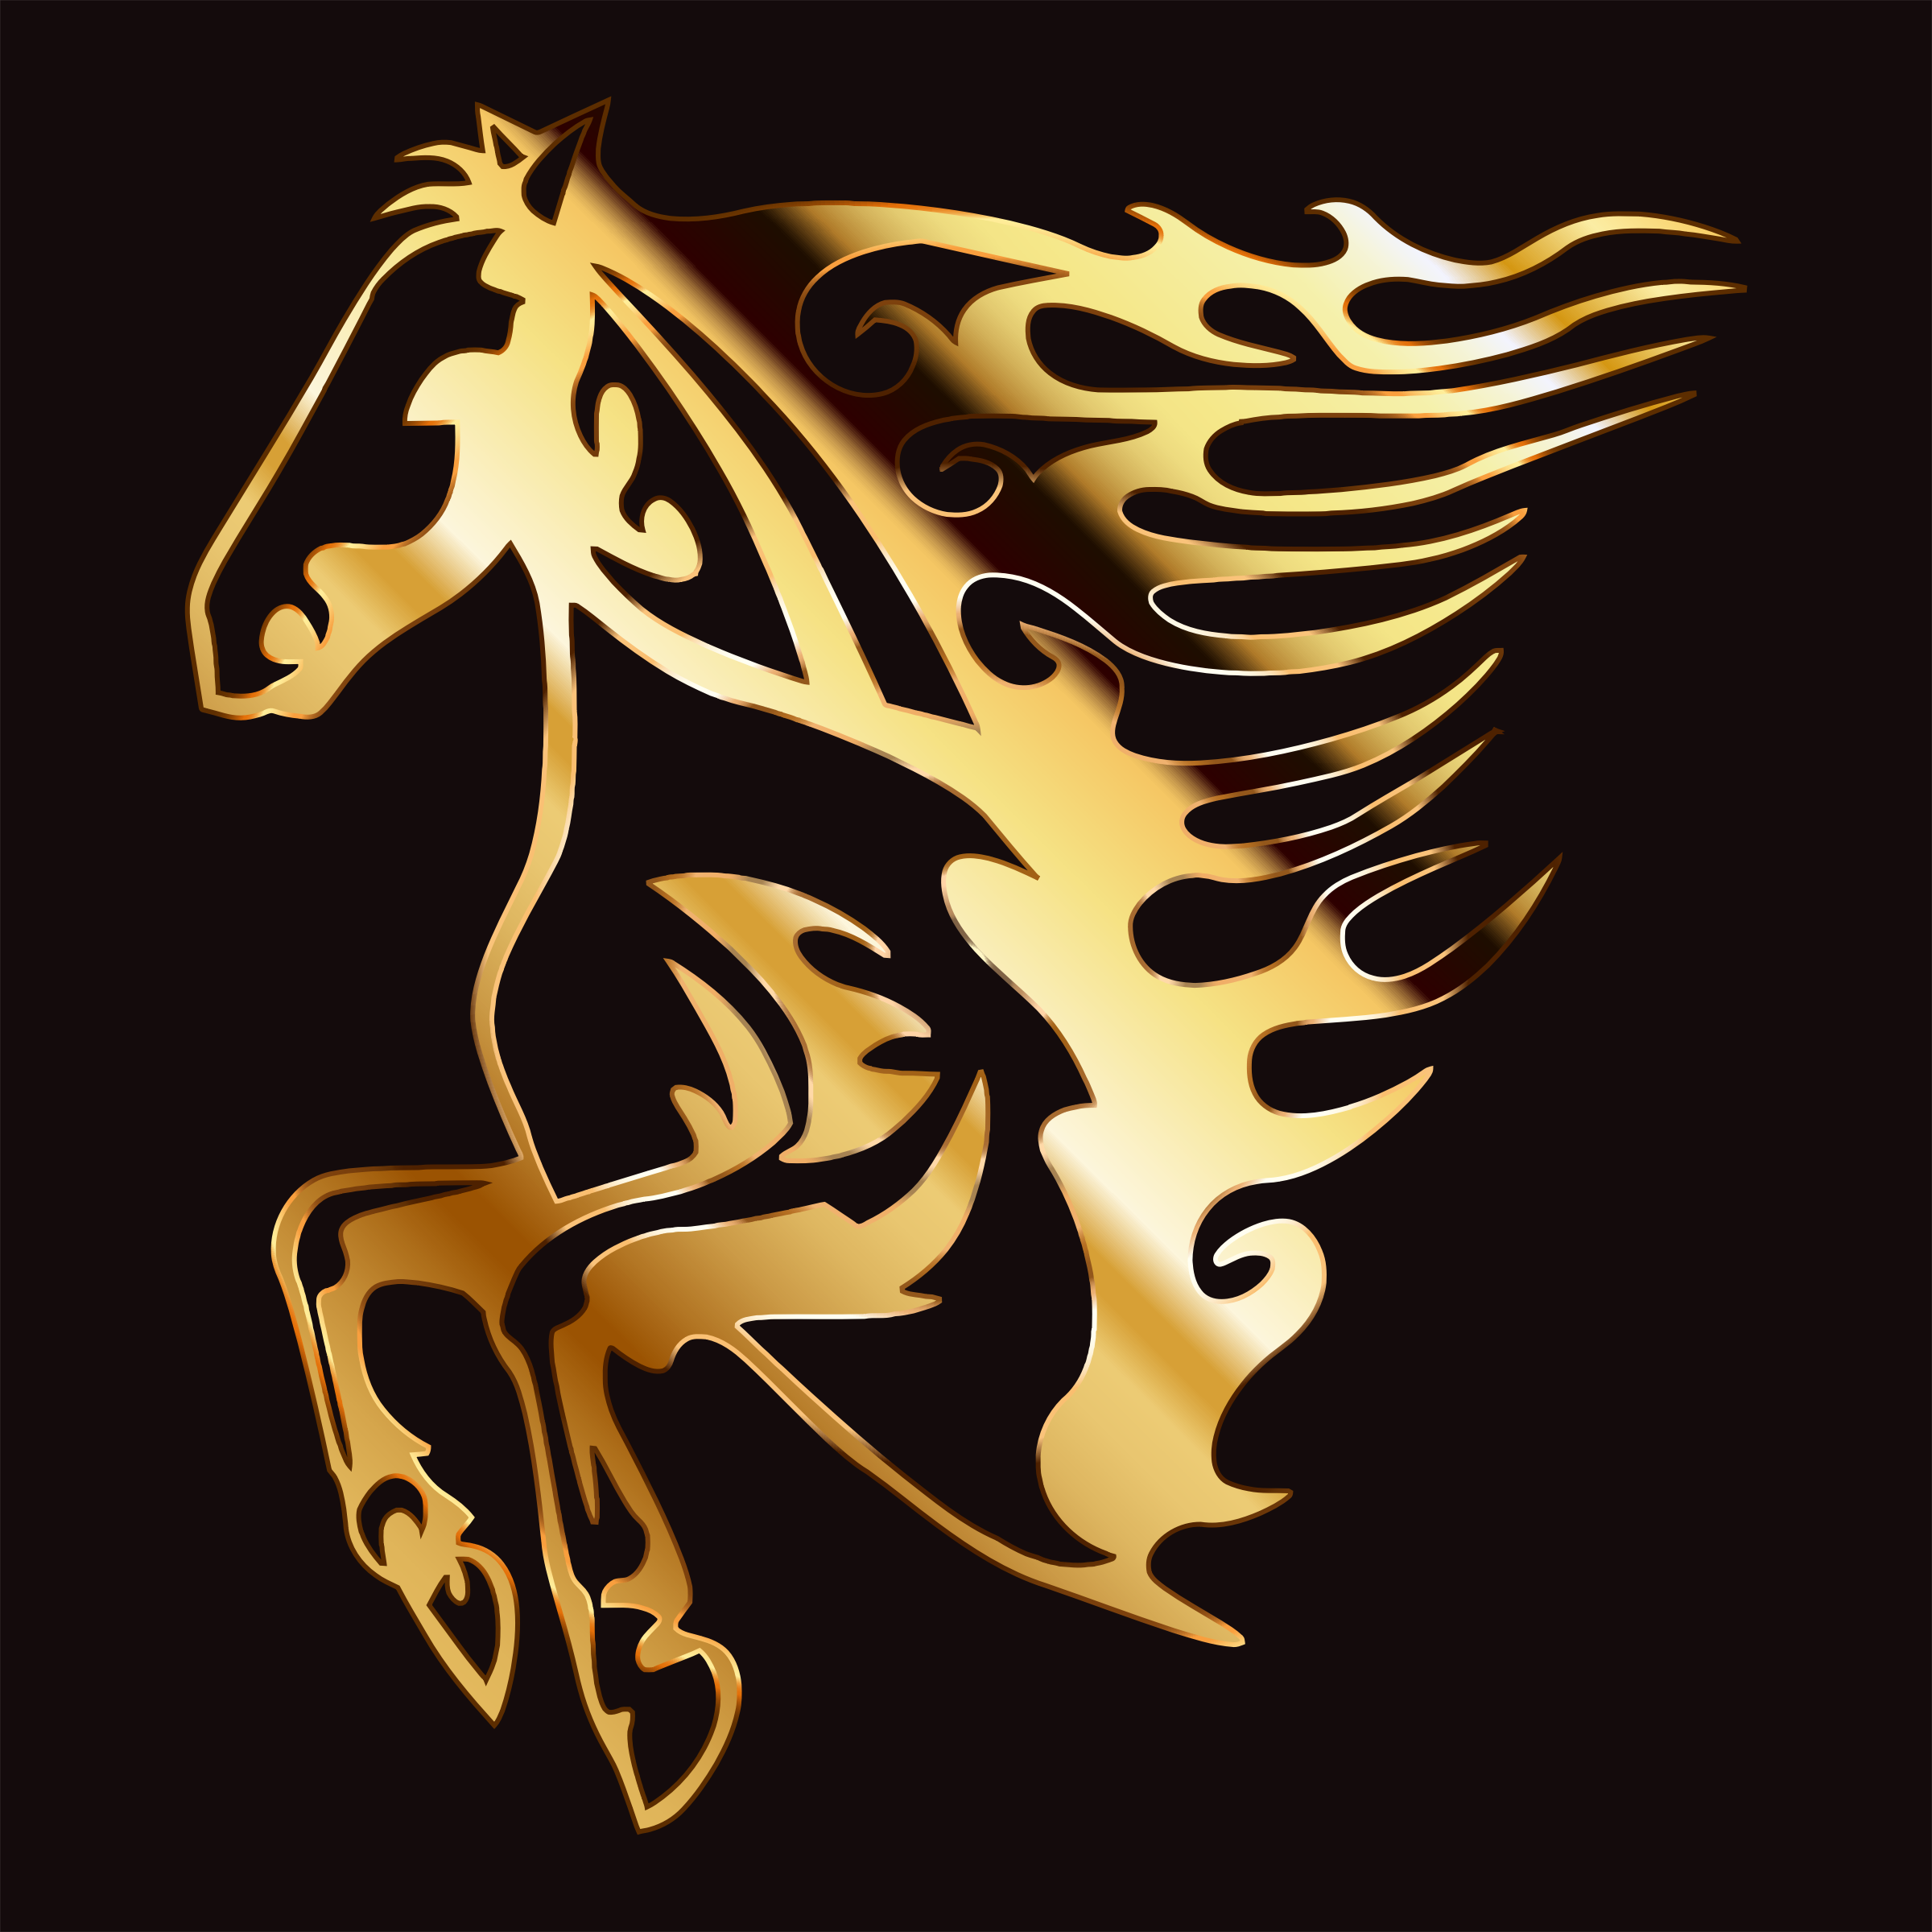 Golden Flame Horse 6 by GDJ